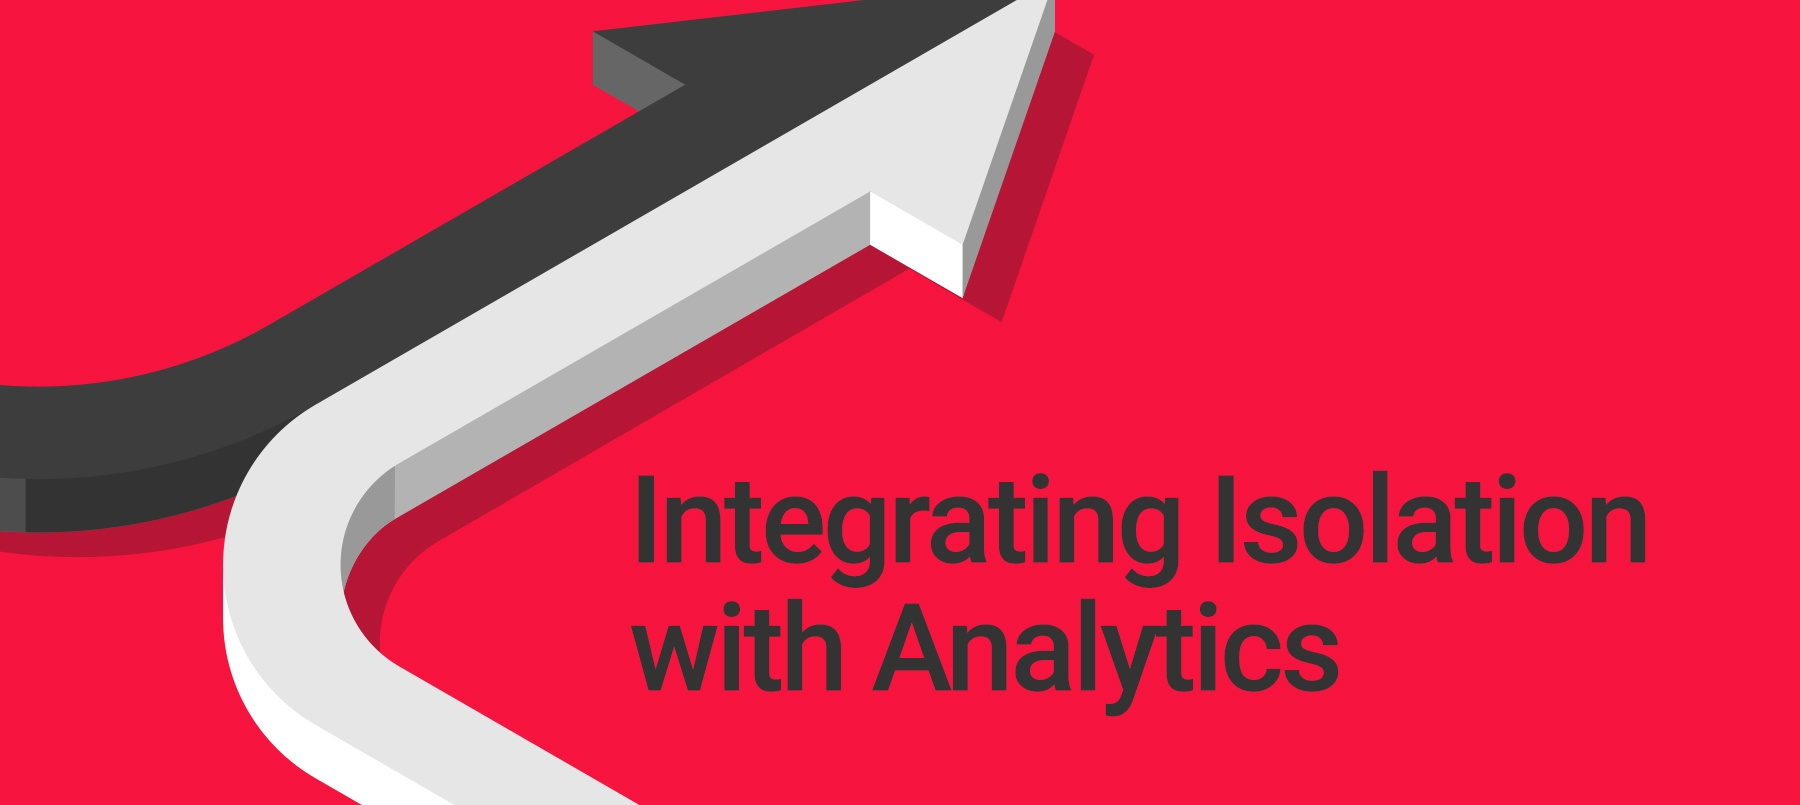 Integrating-Isolation-with-Analytics-news